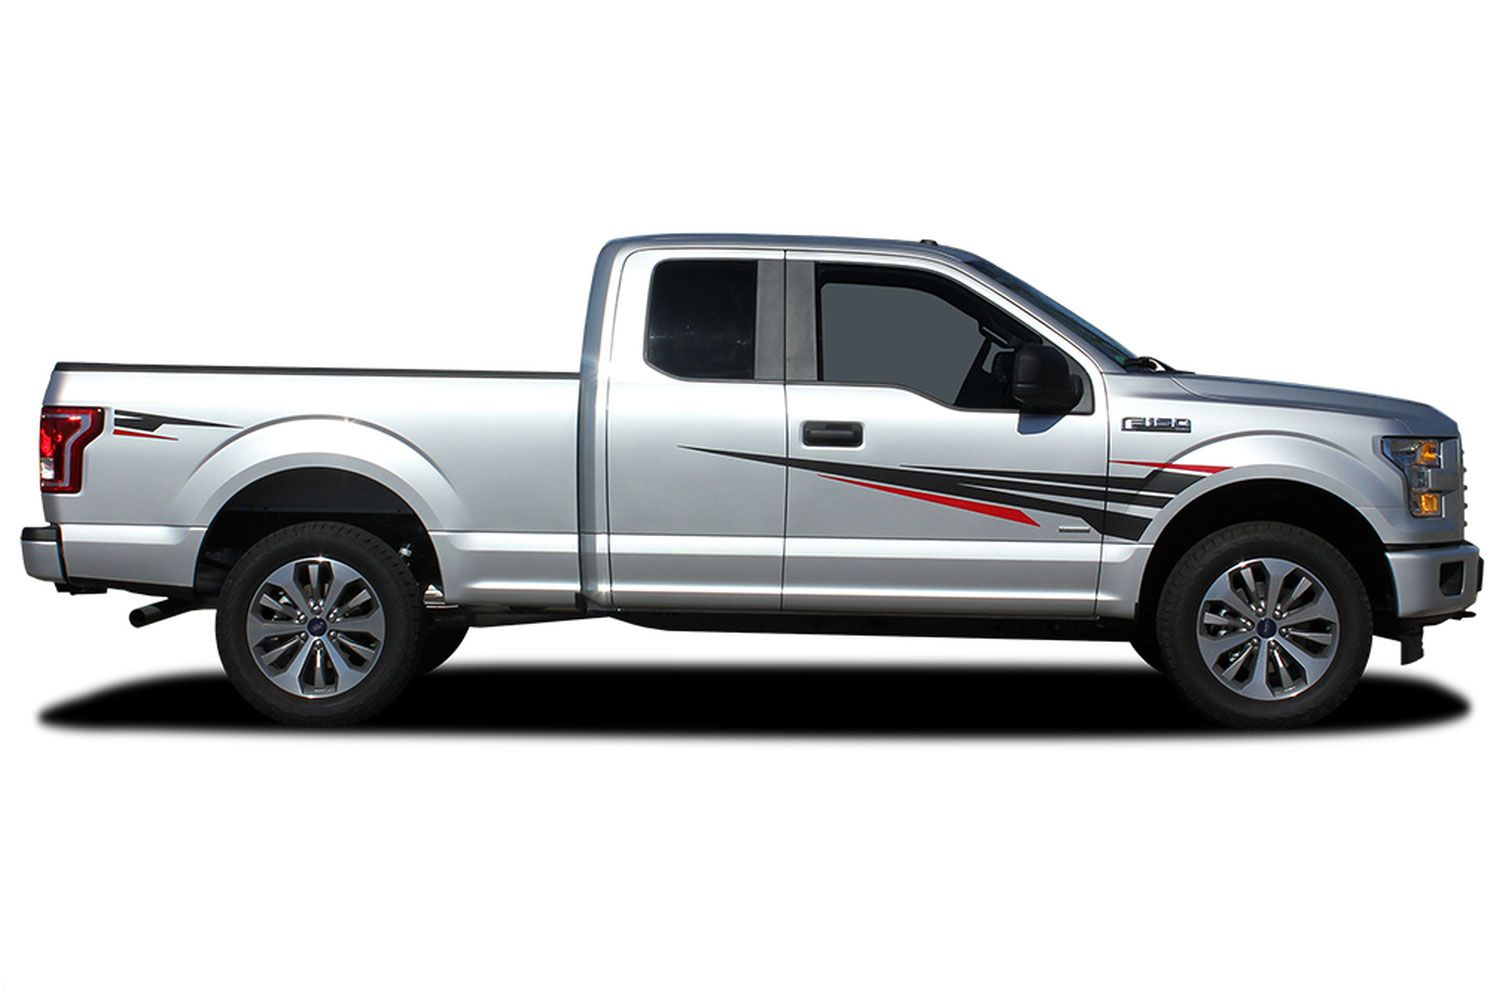 2017 F150 Colors >> 2015 2016 2017 2018 2019 Ford F 150 Door Vinyl Graphic Apollo Two Color Decals Fender To Side Panel Vinyl Graphics Kit